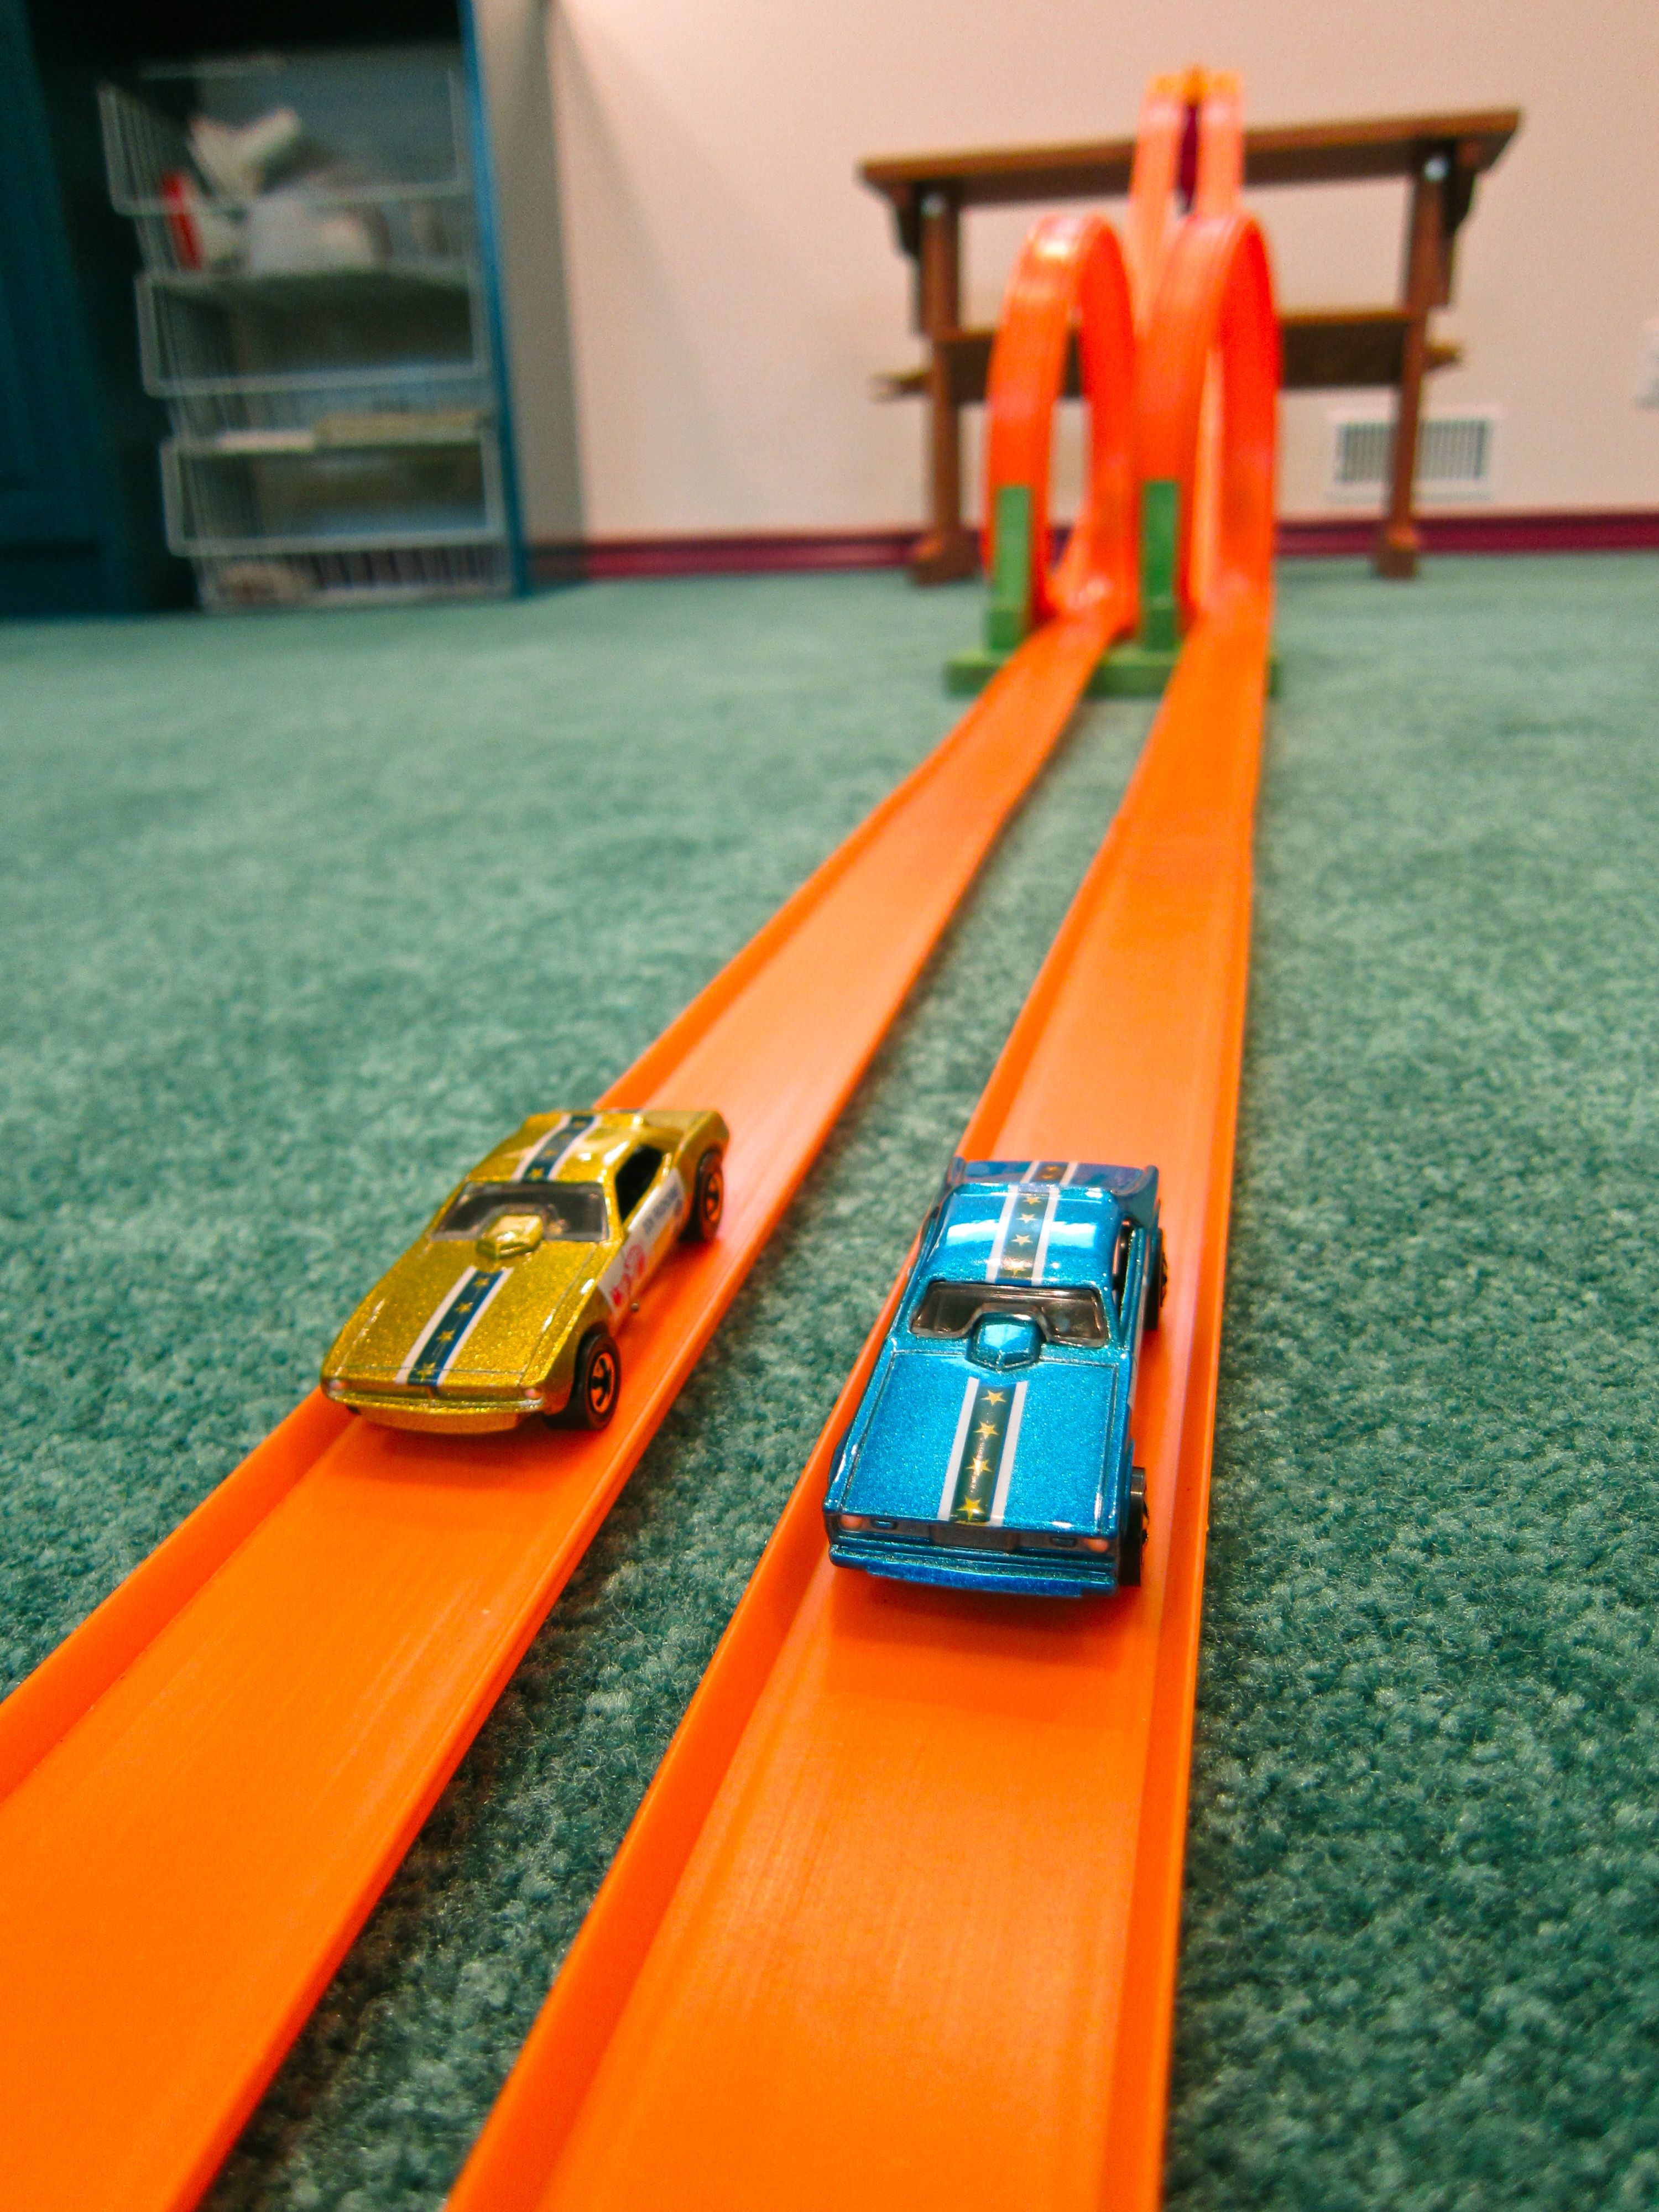 Hot Wheels And Track From 60 S Childhood Memories 70s My Childhood Memories Childhood Memories